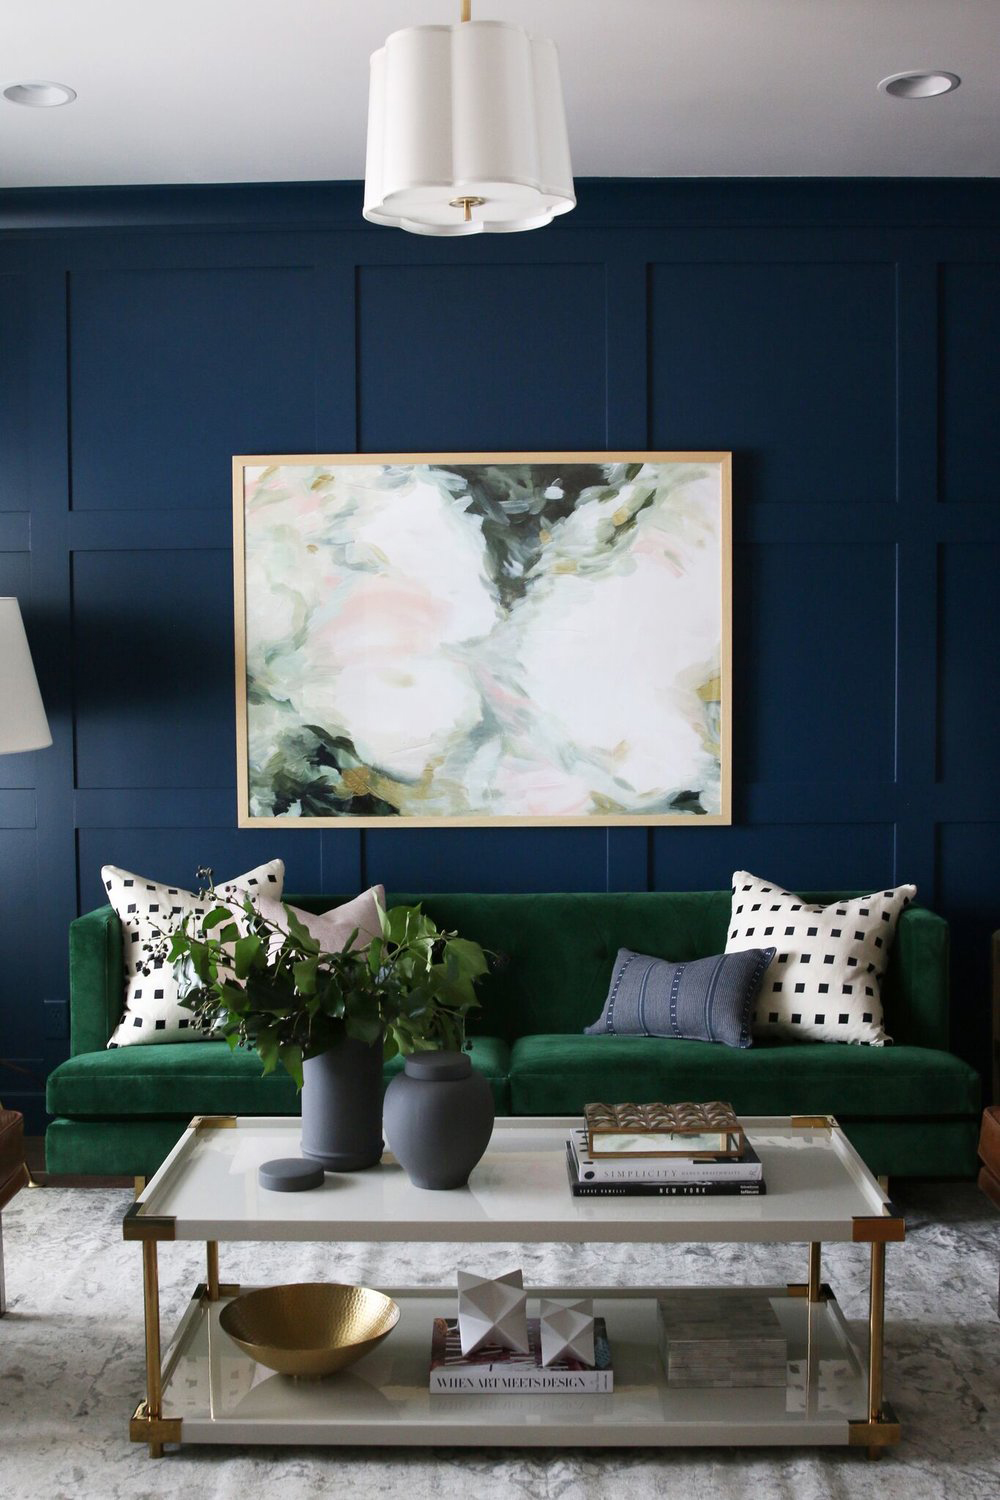 STATEMENT ART FAVORITES by popular home and interior design blogger E. INTERIORS